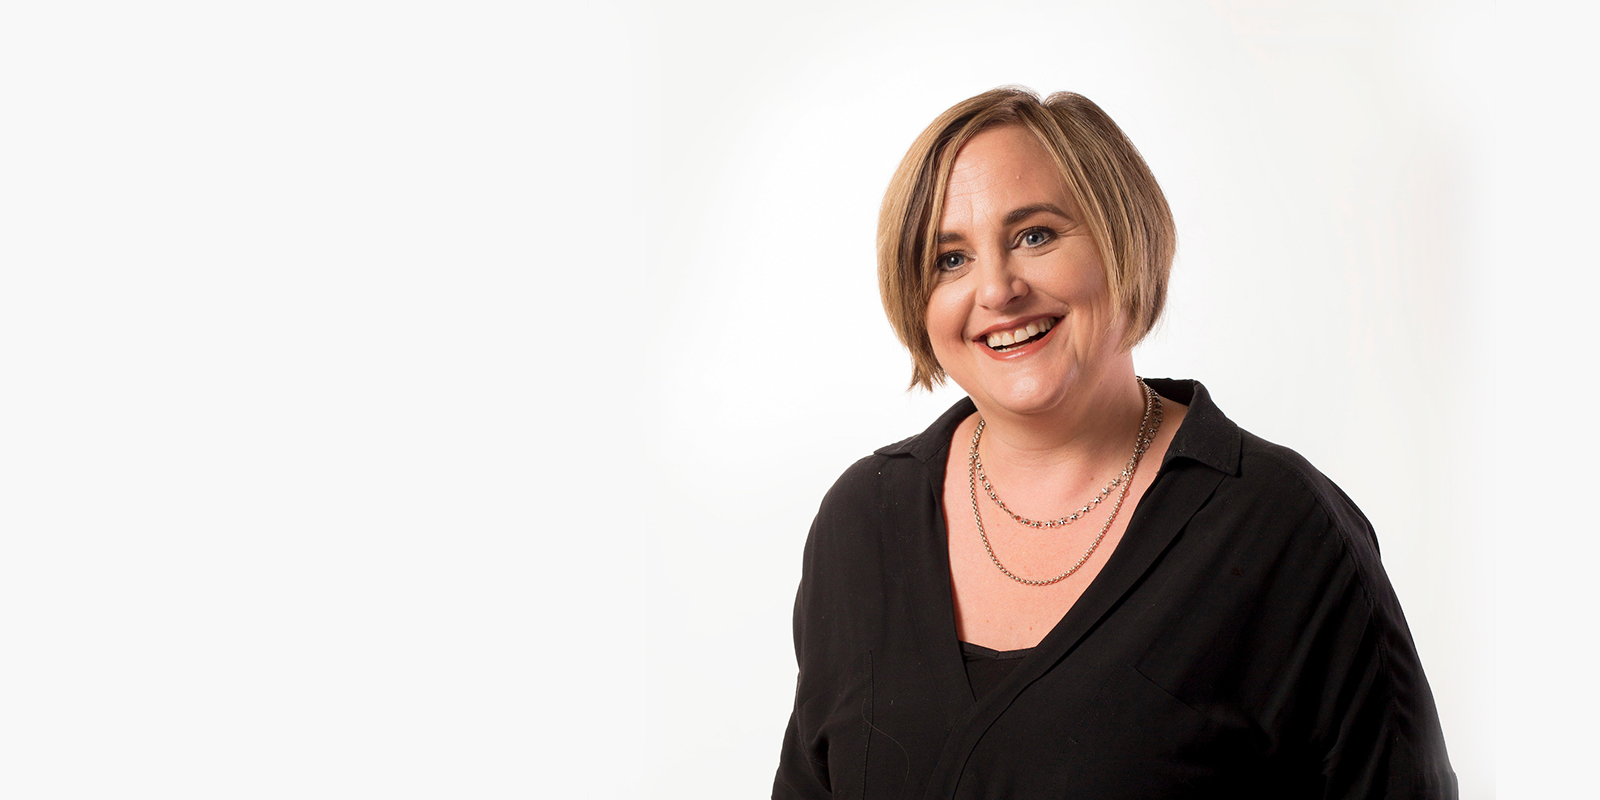 CEO Maree Sidey is Pro Bono's Changemaker of the Week